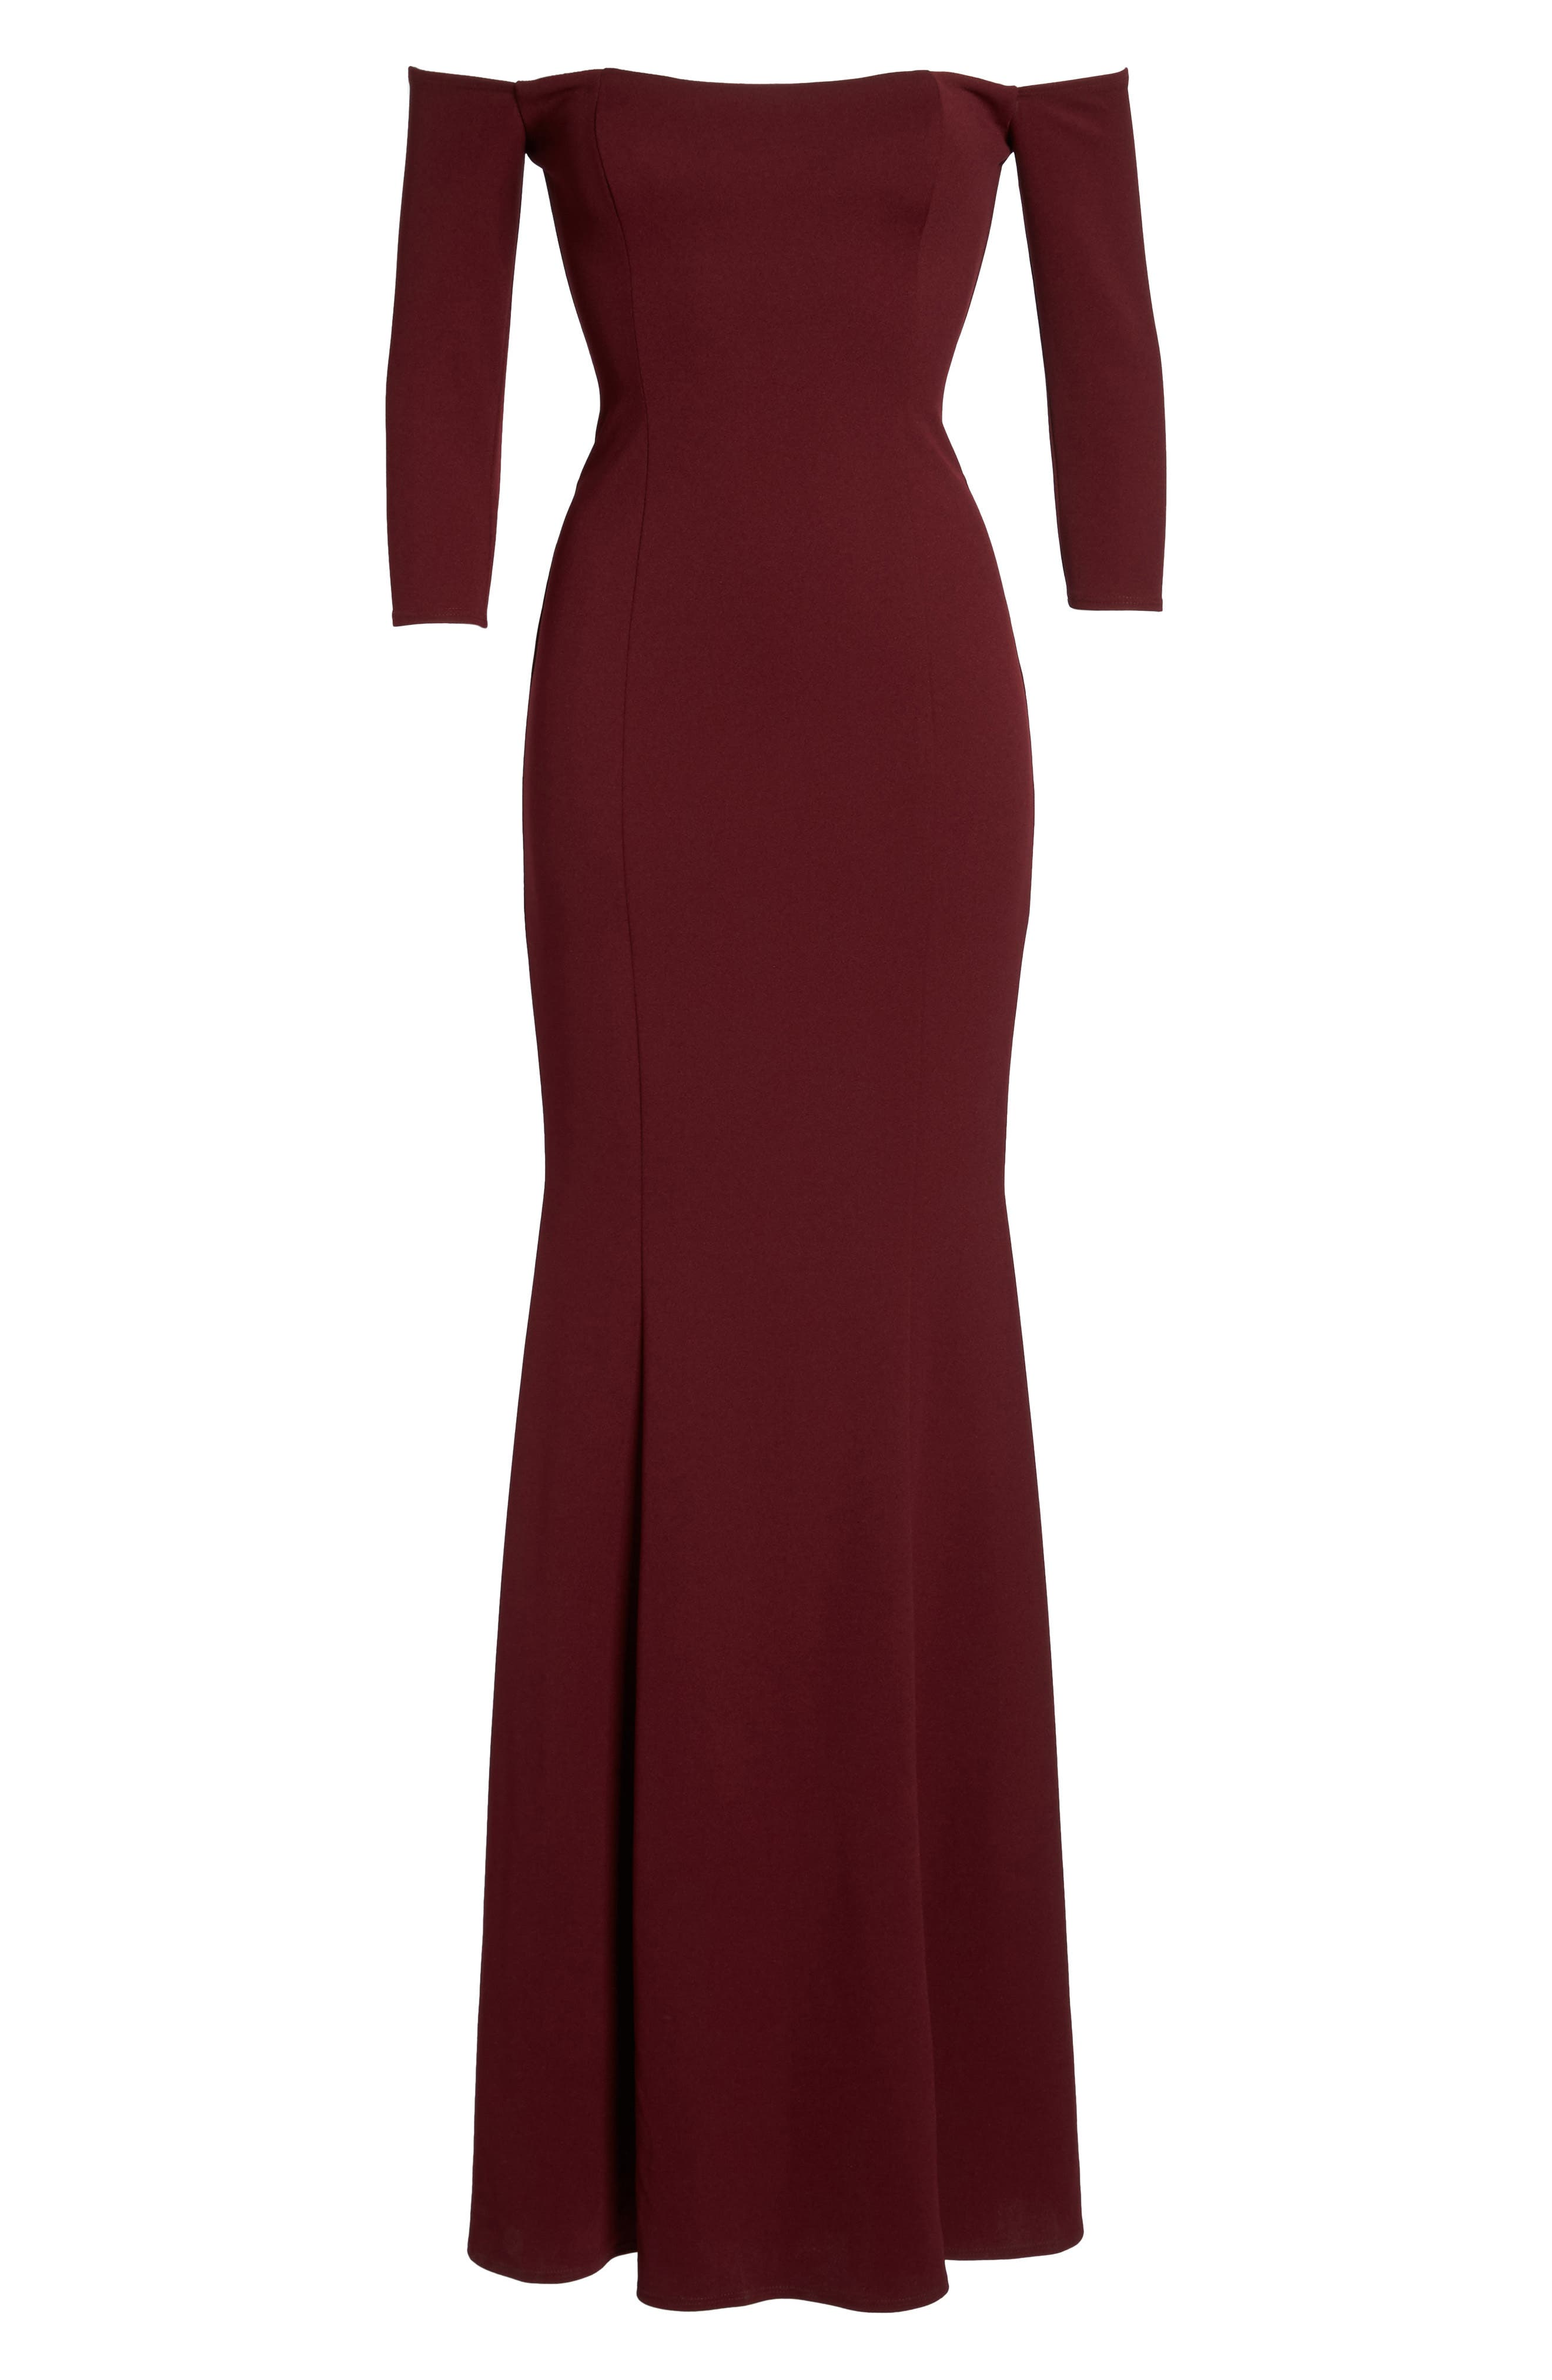 Brentwood Three-Quarter Sleeve Off the Shoulder Gown,                             Alternate thumbnail 7, color,                             Bordeaux